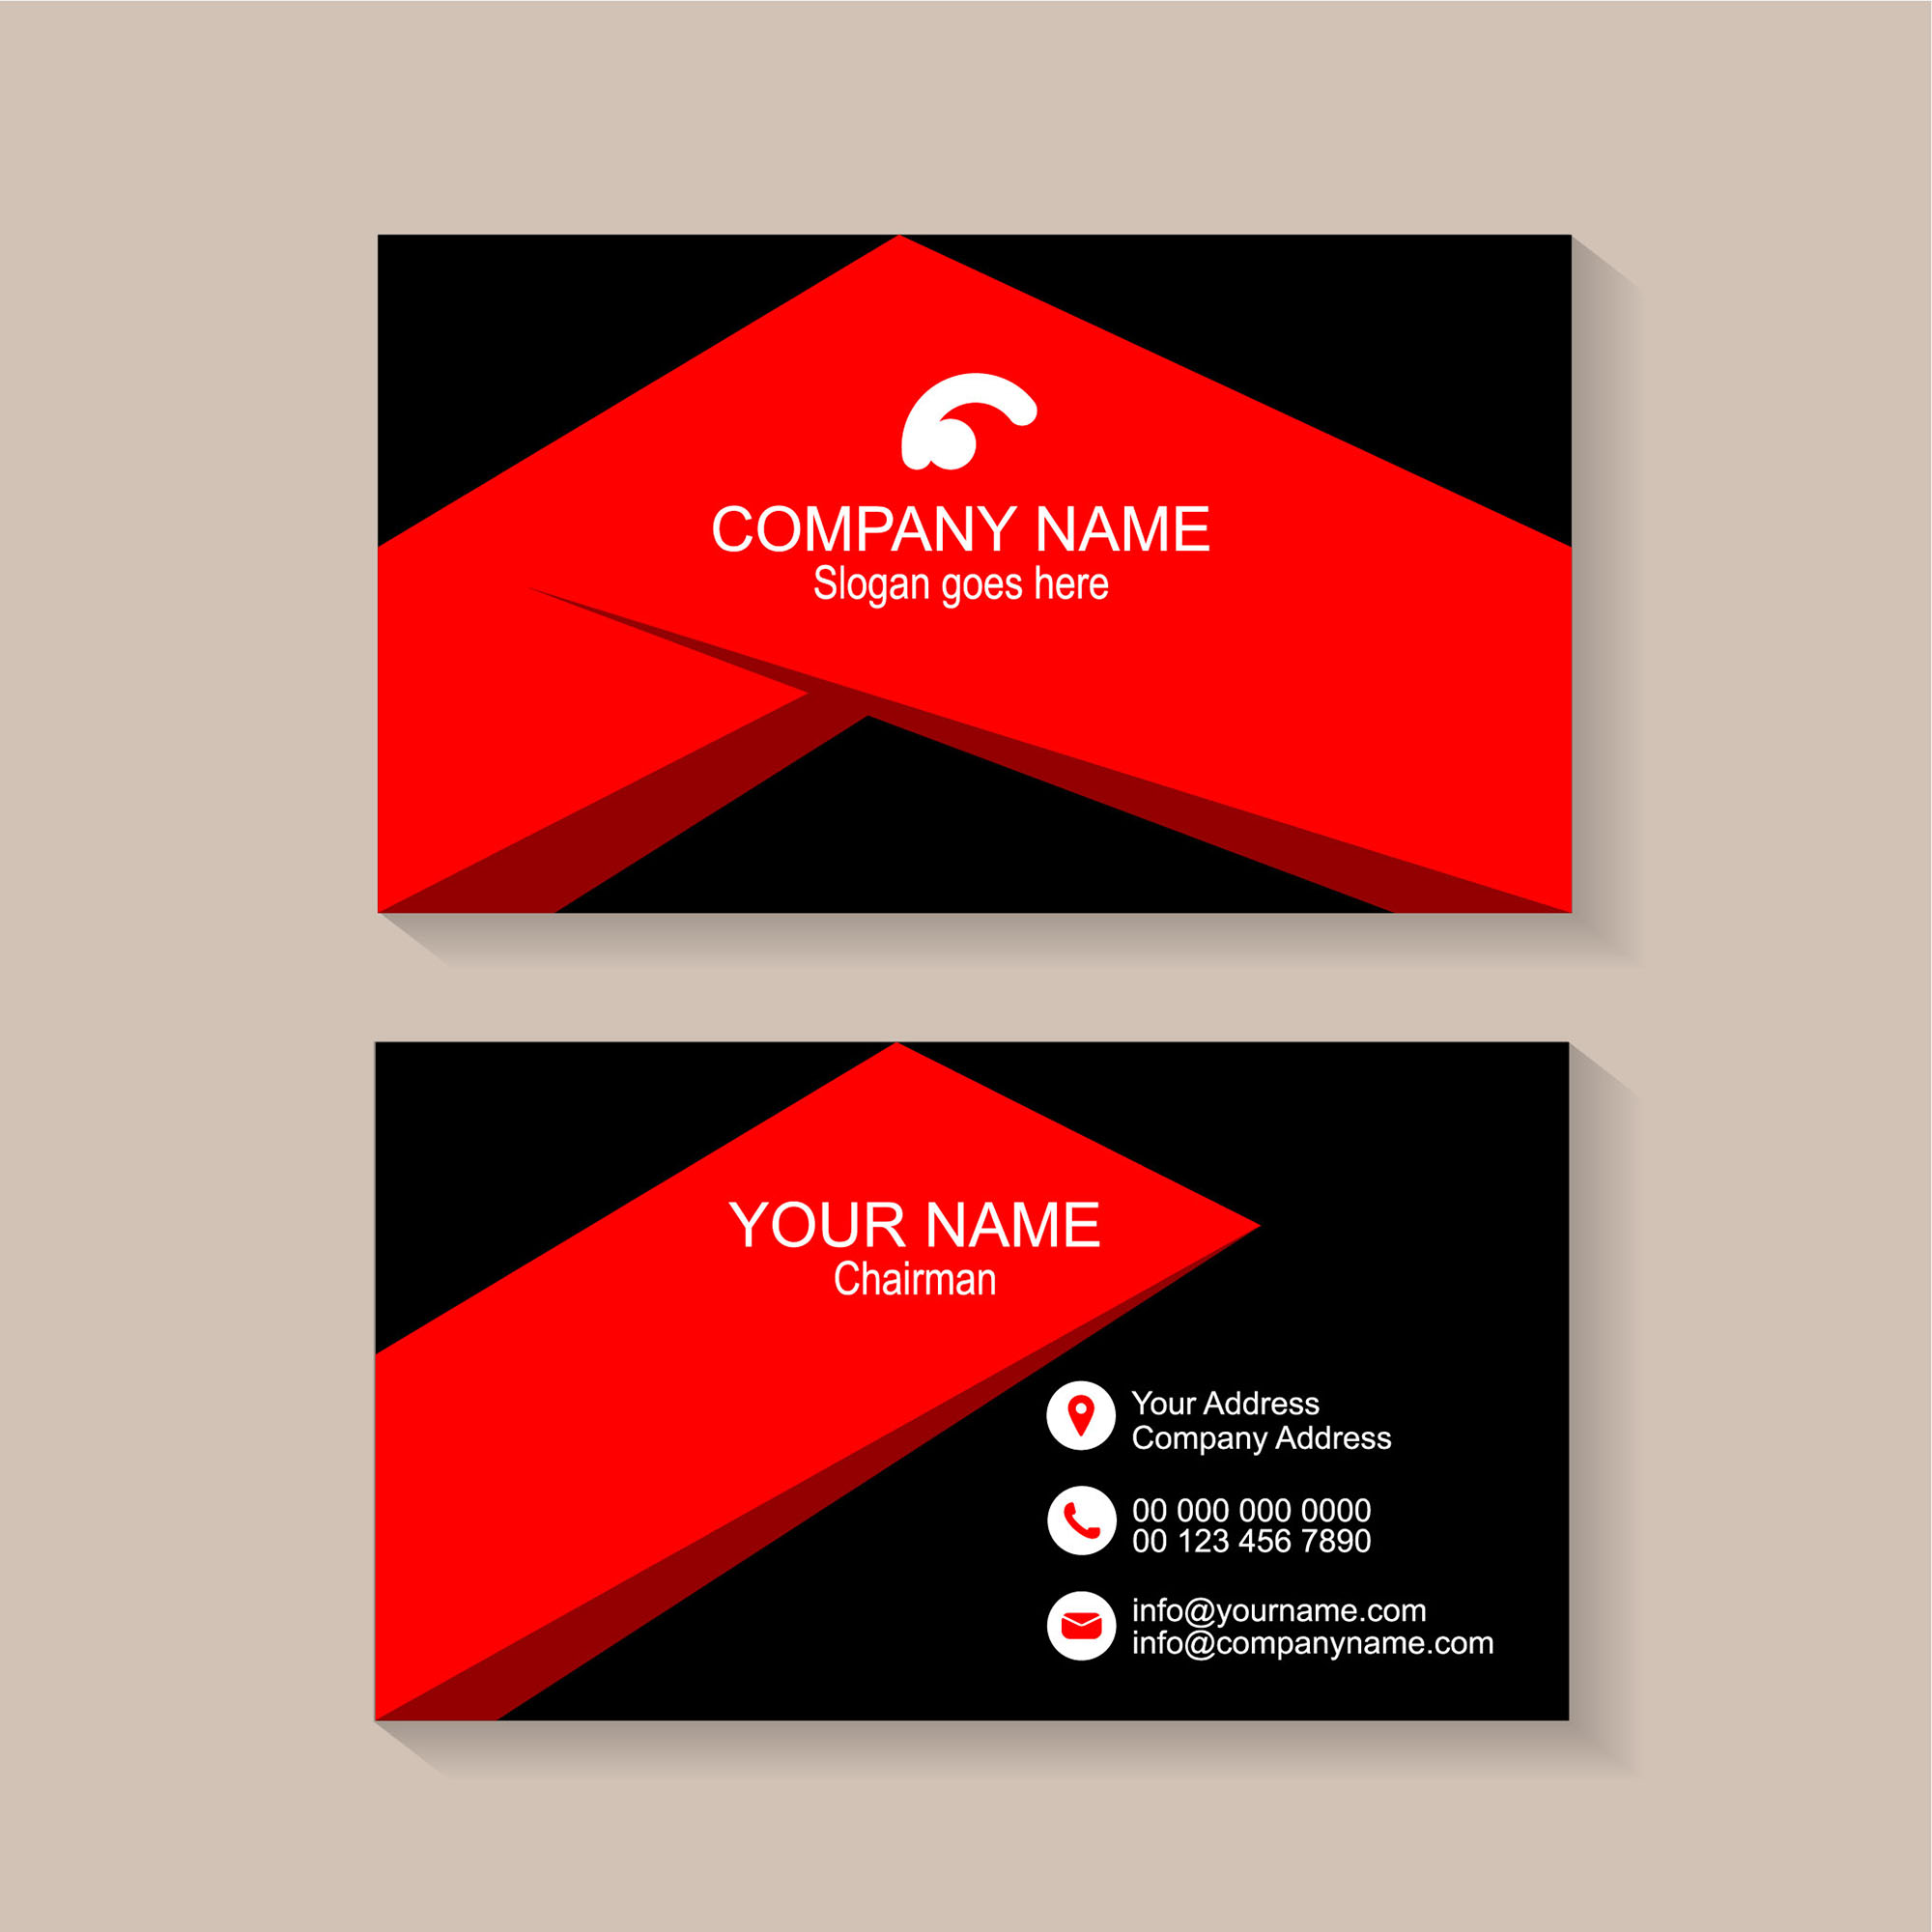 Business card template design free download wisxi business card business cards business card design business card template design templates wajeb